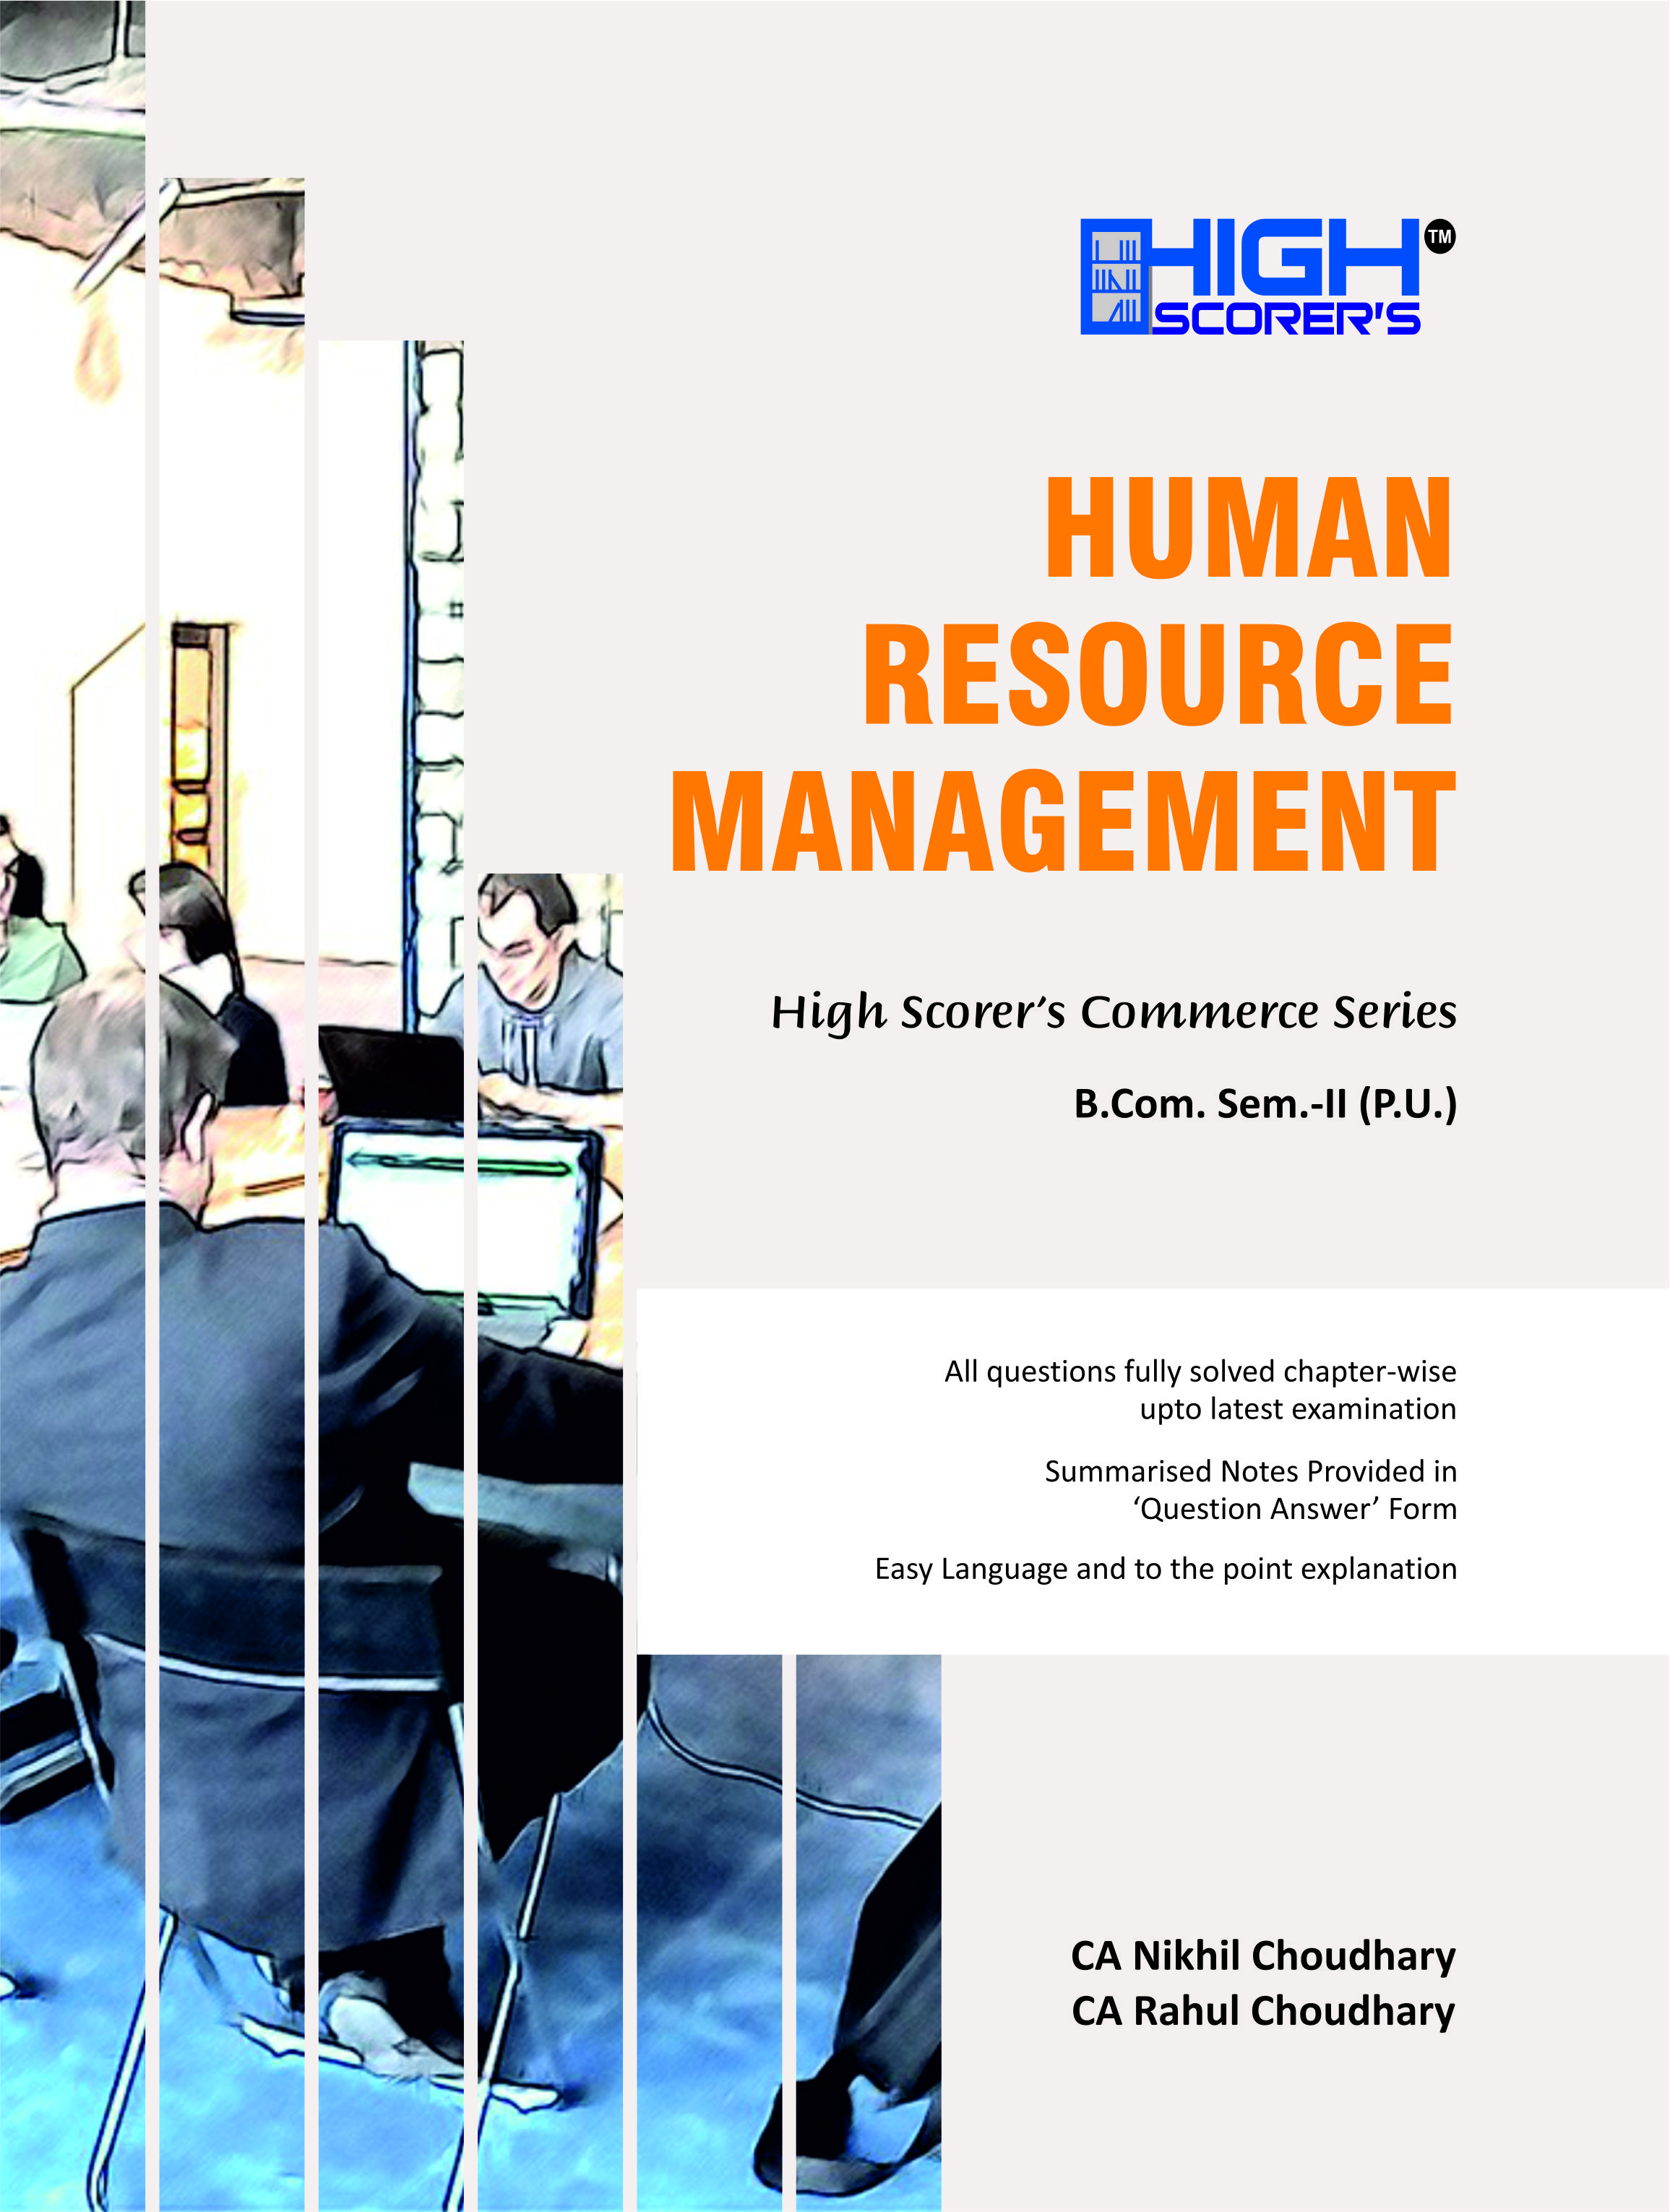 High Scorer's Human Resource Management for B.Com semester-II and BBA Sem-IV by CA Nikhil Choudhary & CA Rahul Choudhary (Mohindra Publishing House) Edition 2020 for Panjab University